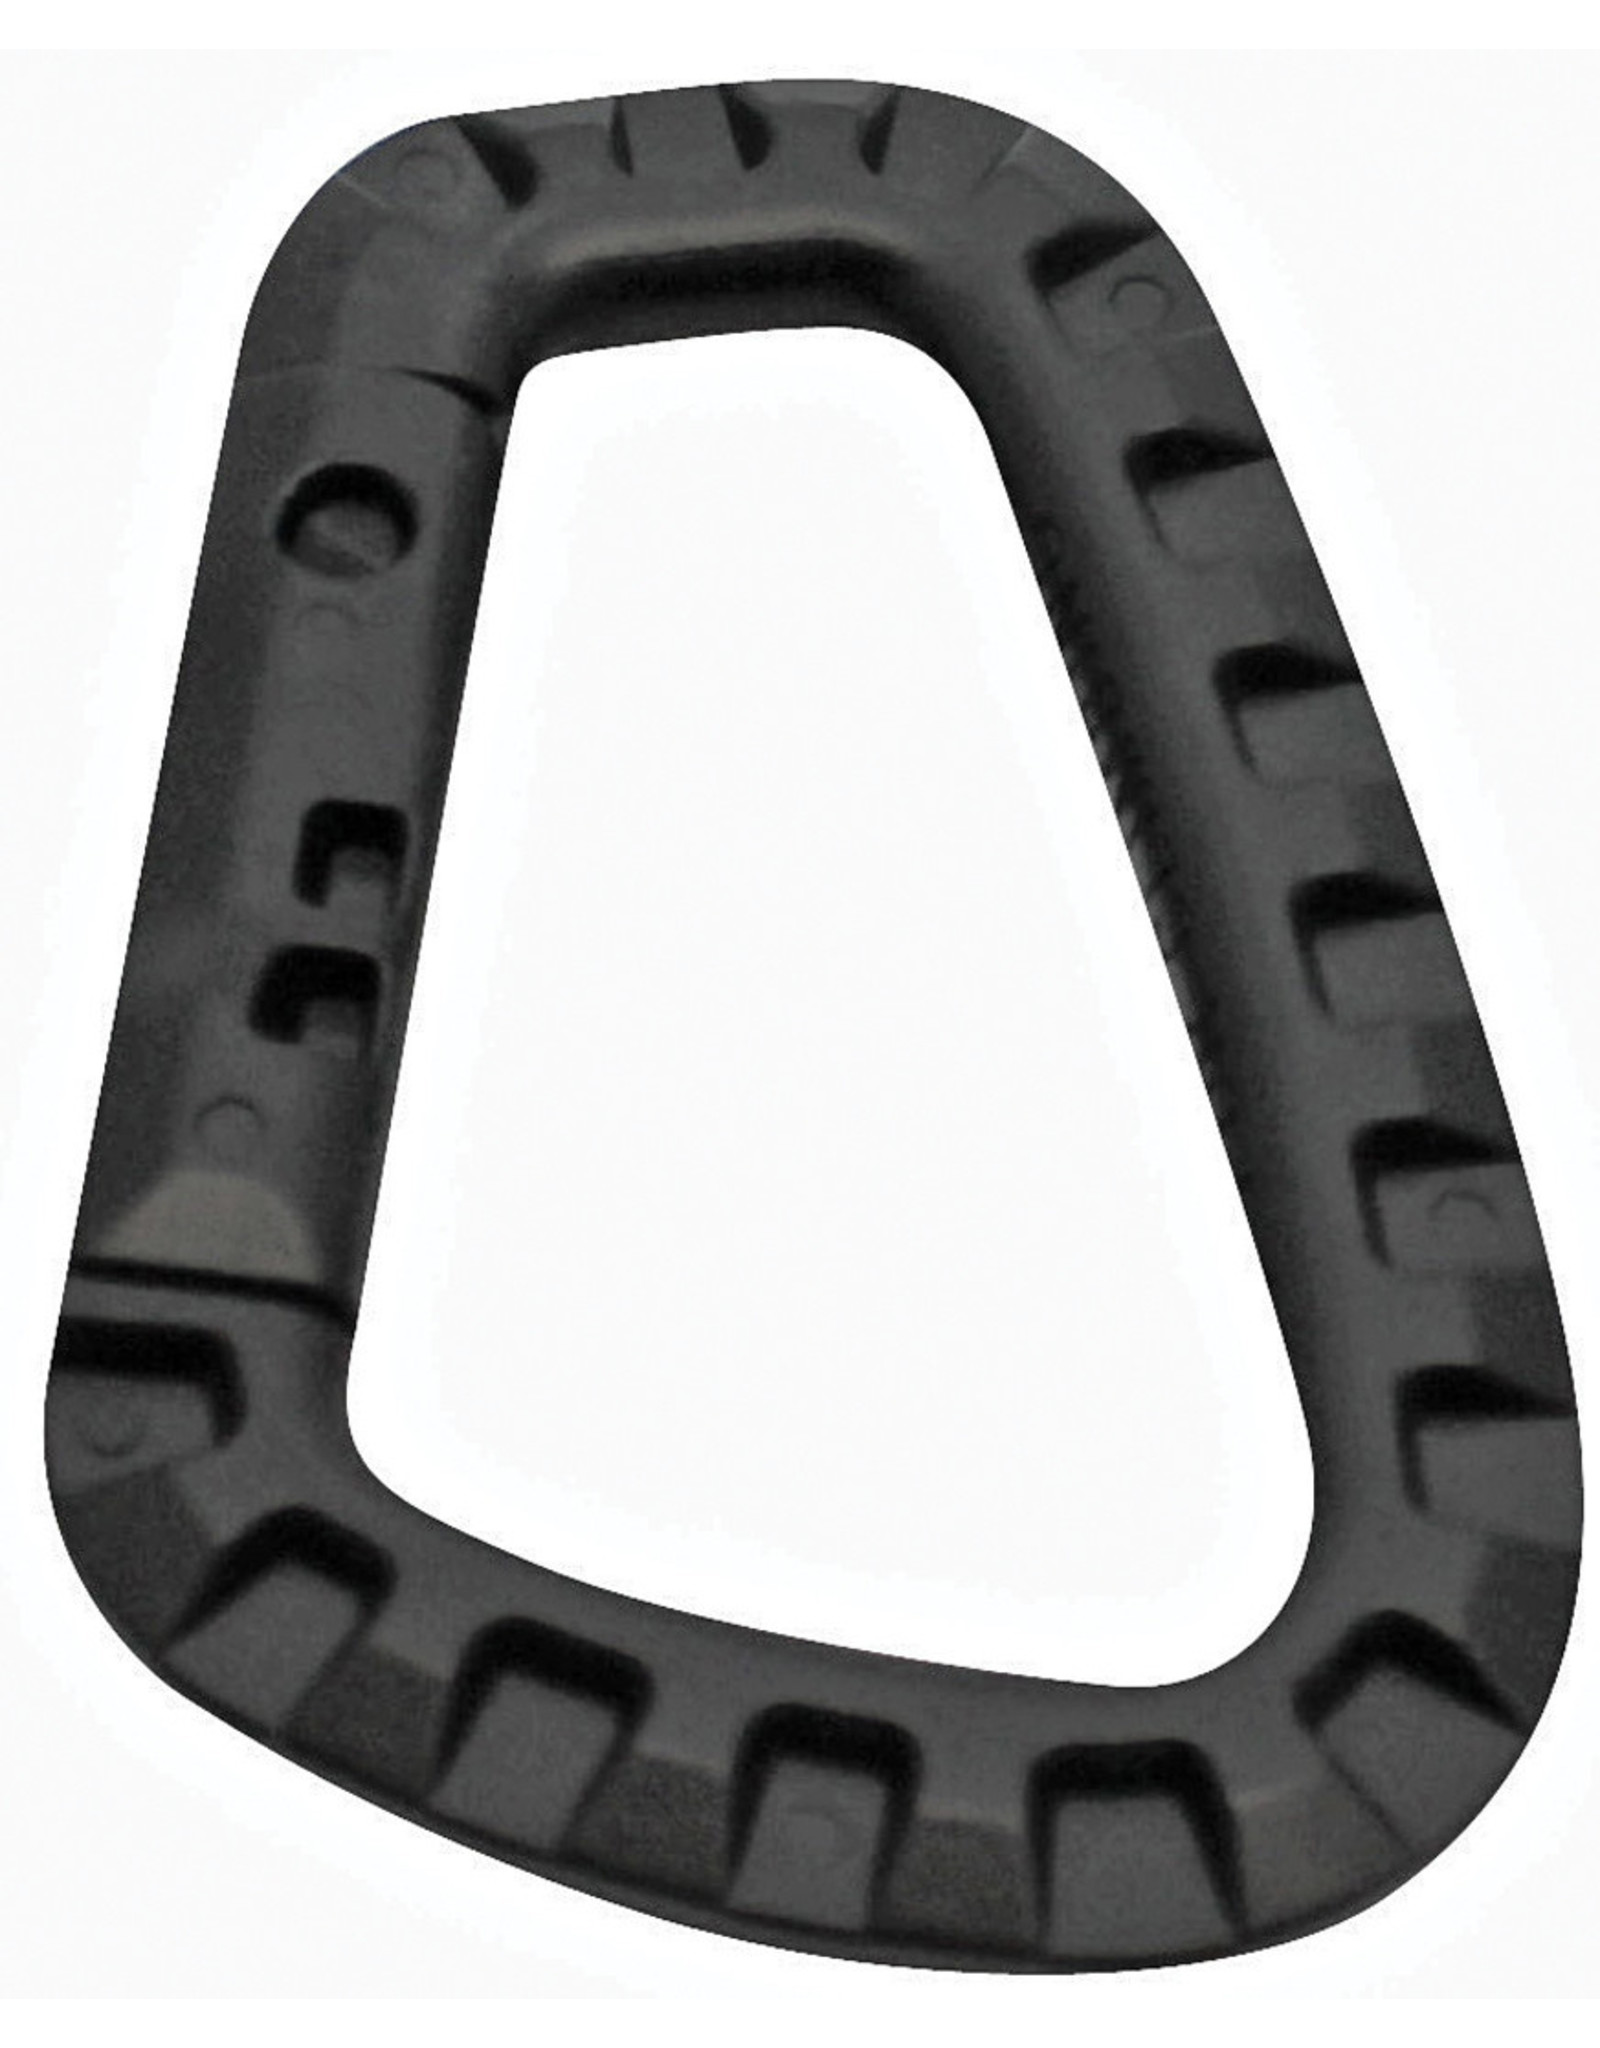 WORLD FAMOUS SALES MIL -SPEX TACTICAL BINER PLASTIC BLACK